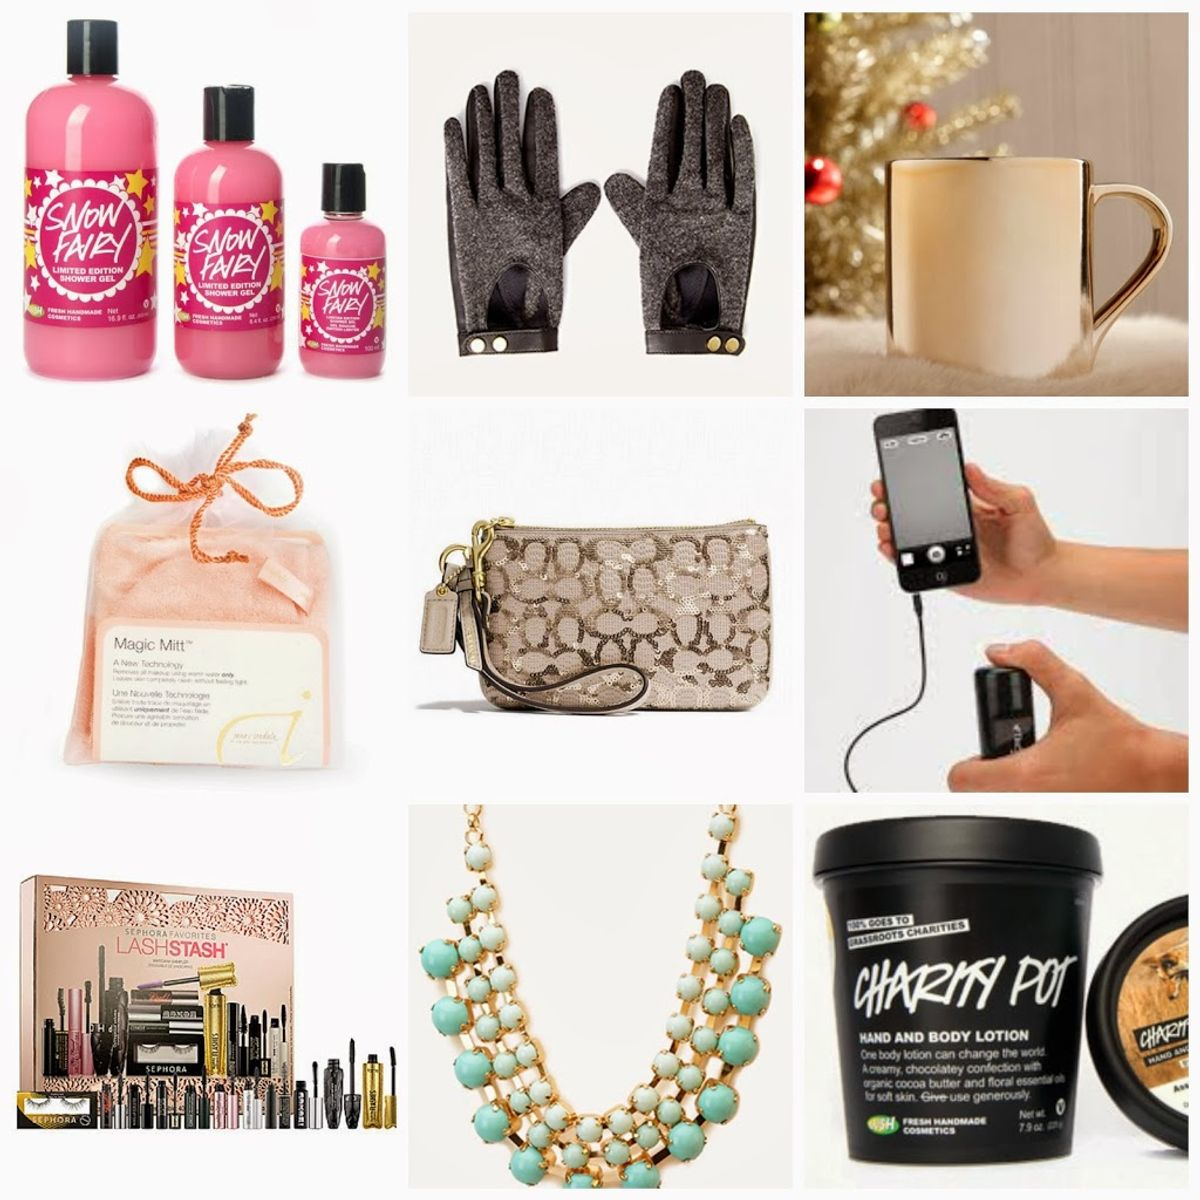 20 Holiday Gifts For Her Under $10